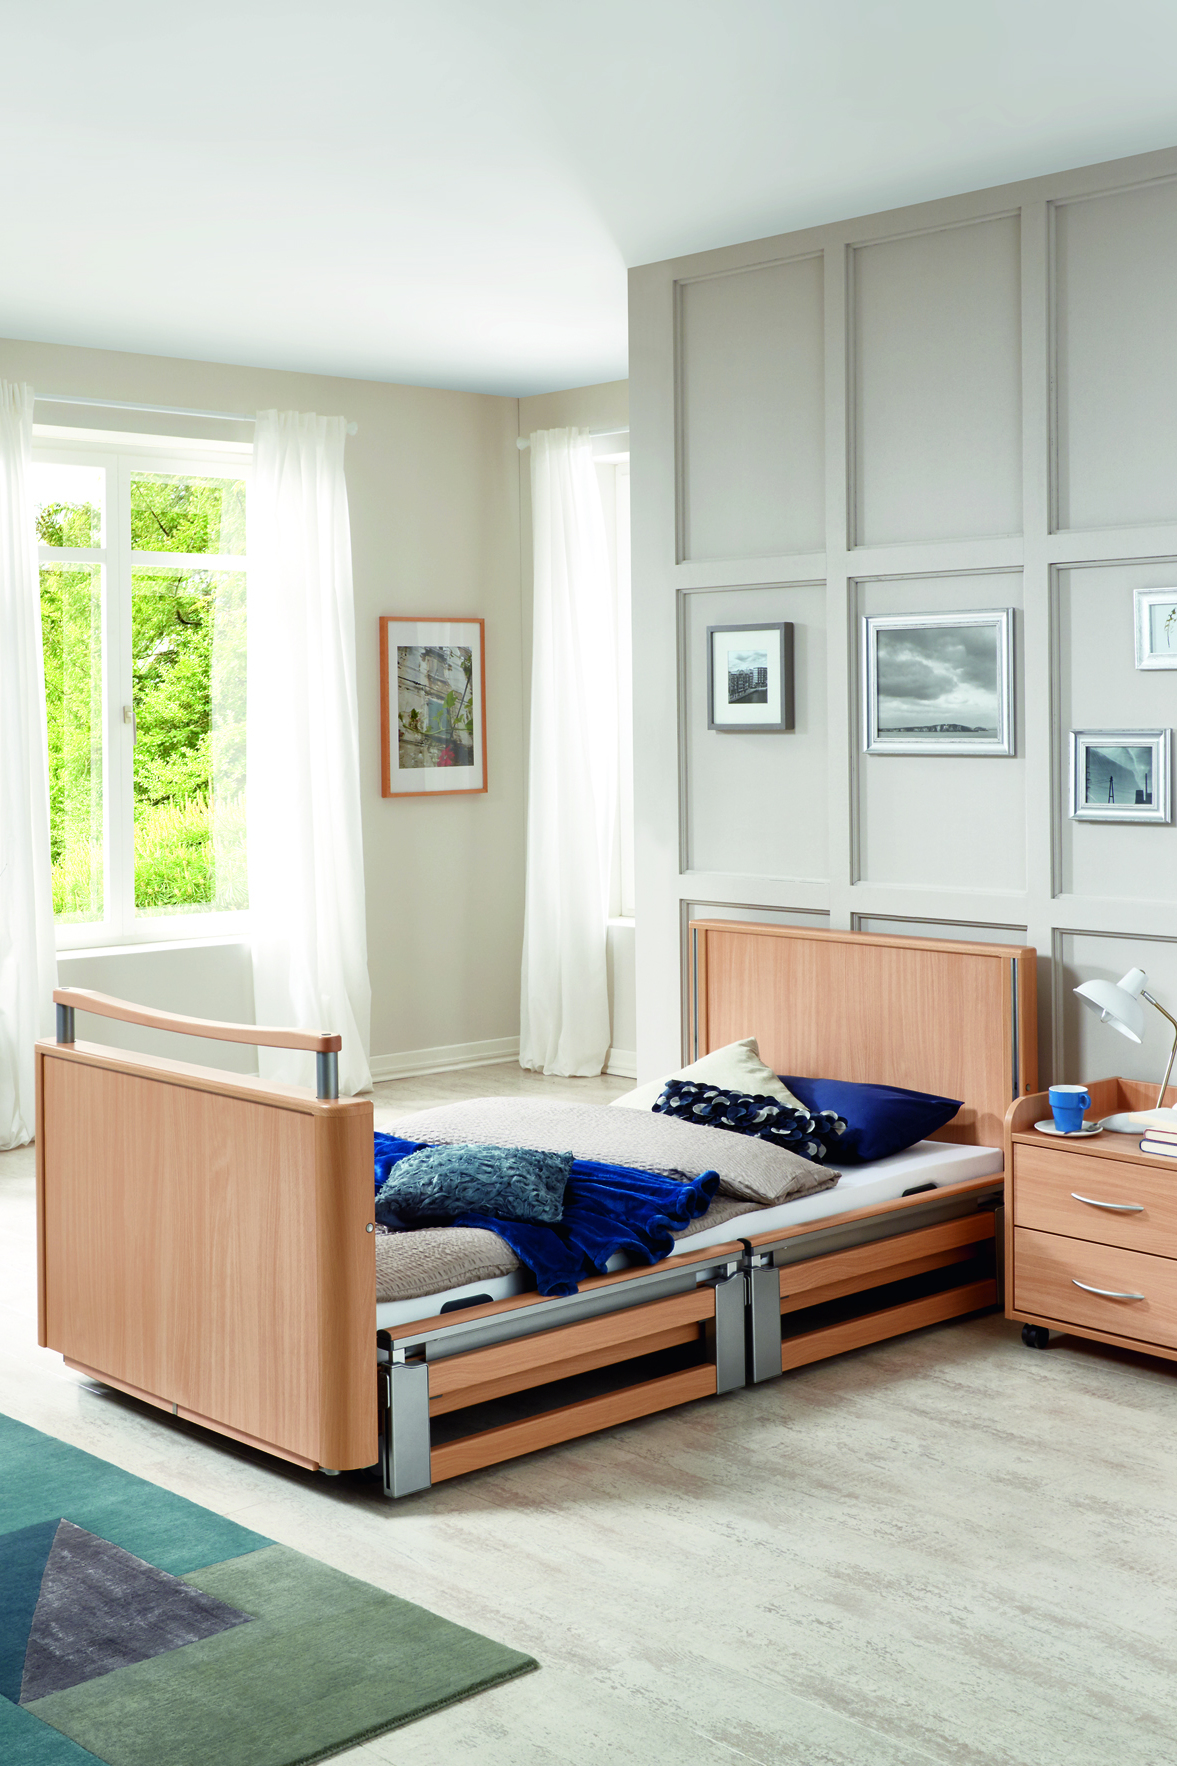 Optional telescopic safety side of the Inovia care bed